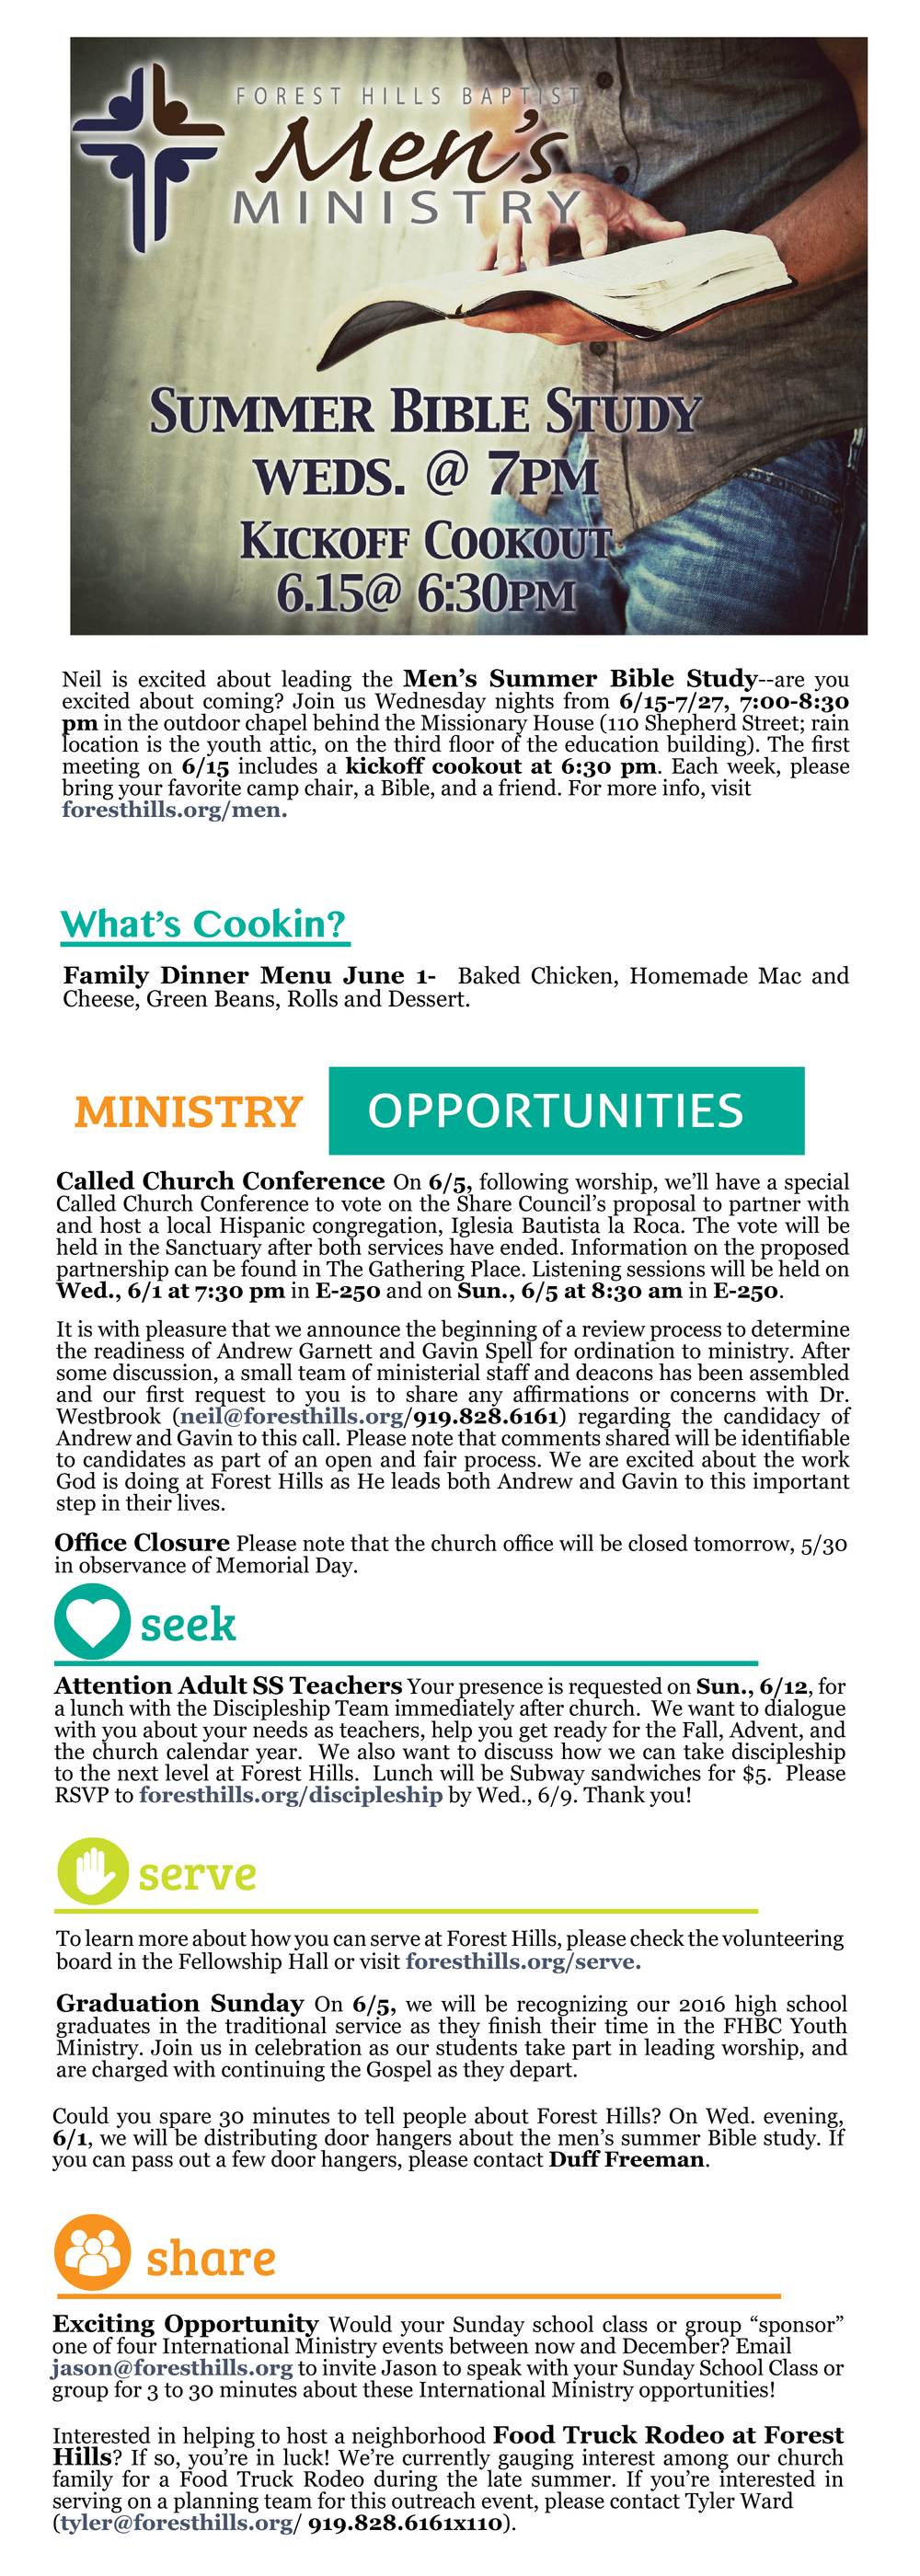 Forest hills baptist church weekly update